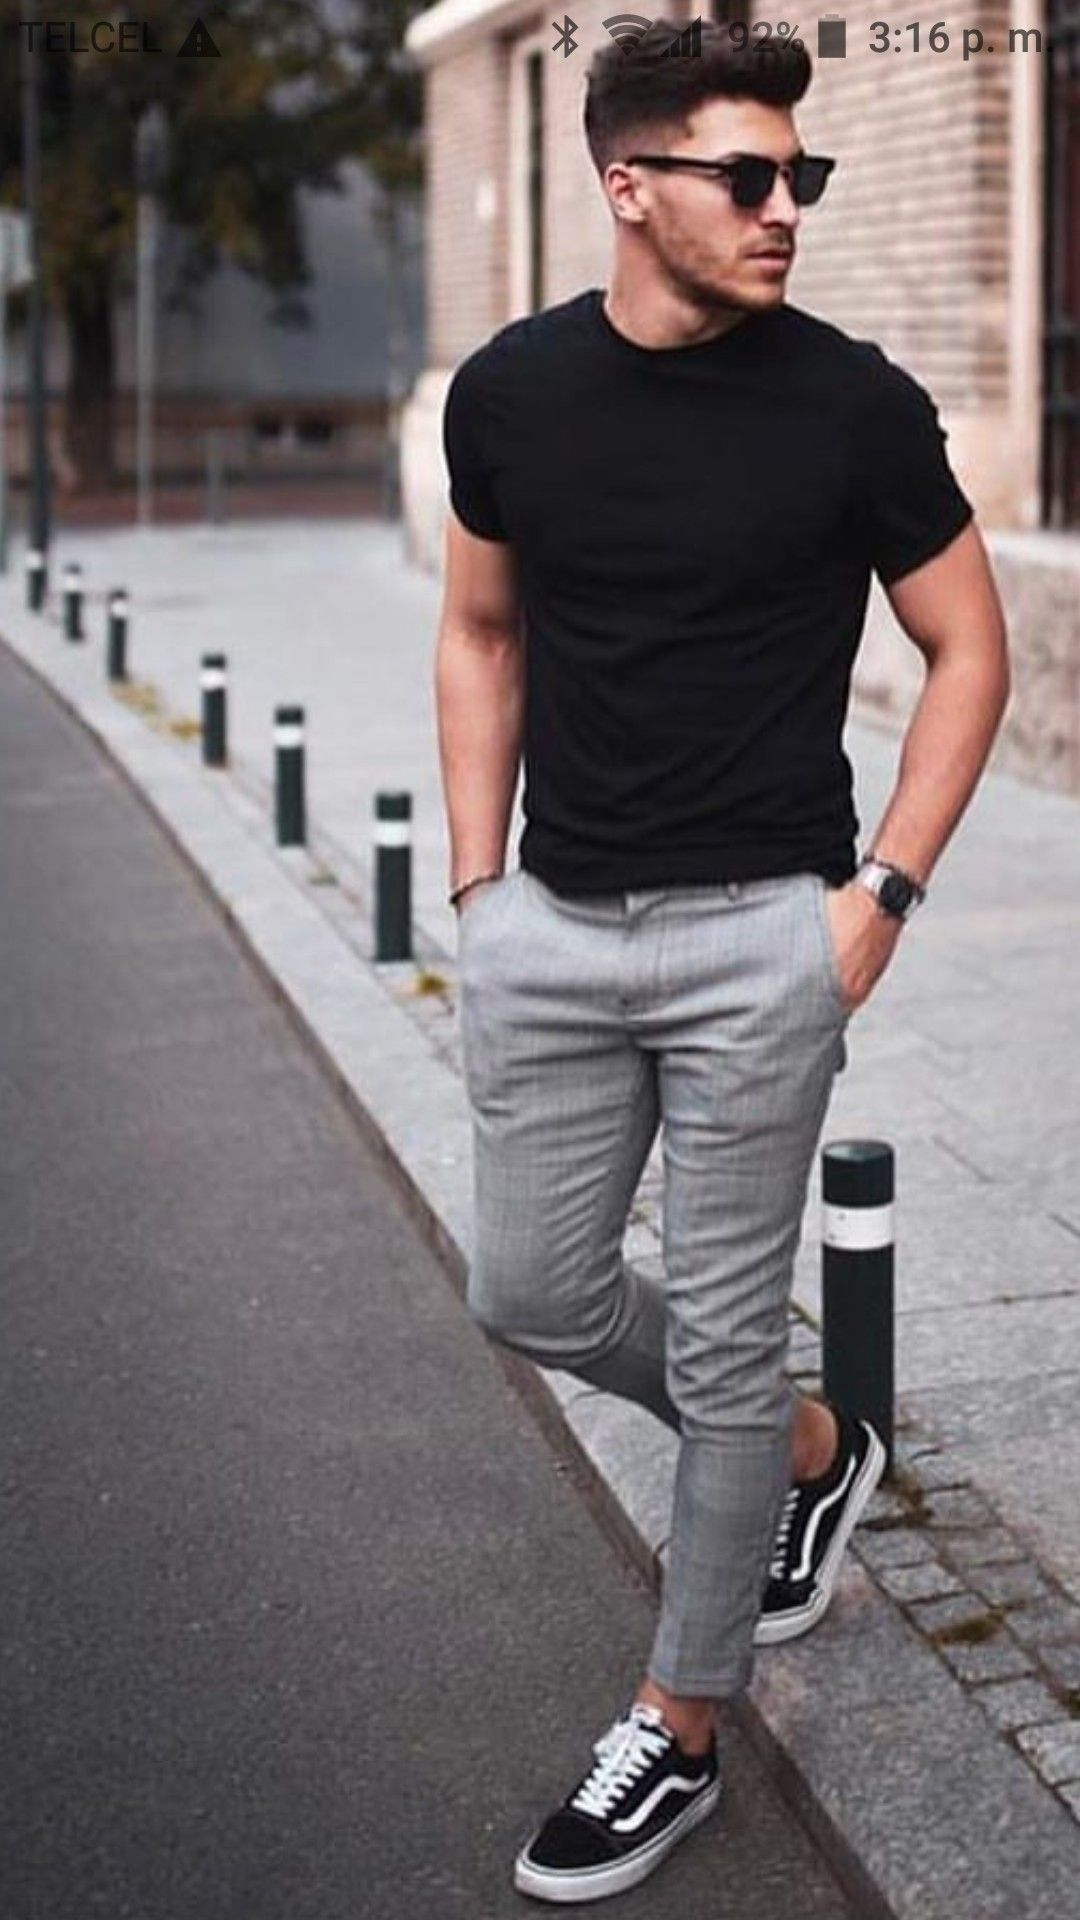 Casualoutfits Business Casual Outfits Casual Outfits Casual Outfits Spring Casualo Best Casual Wear For Men Smart Casual Menswear Stylish Men Casual [ 1920 x 1080 Pixel ]